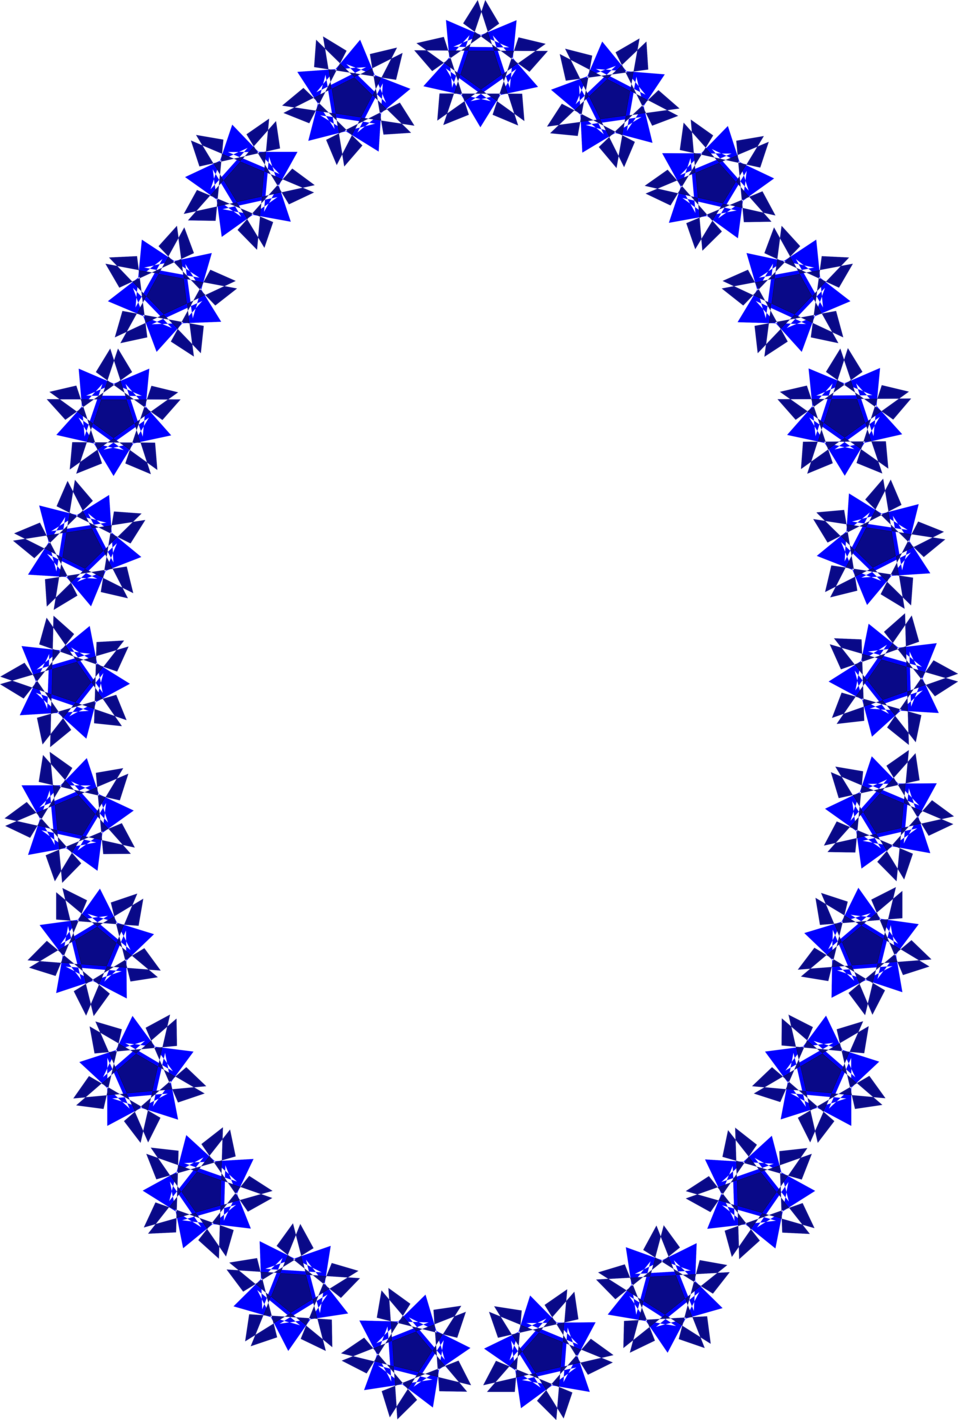 Illustration of a blank frame border of blue star shapes : Free Stock Photo